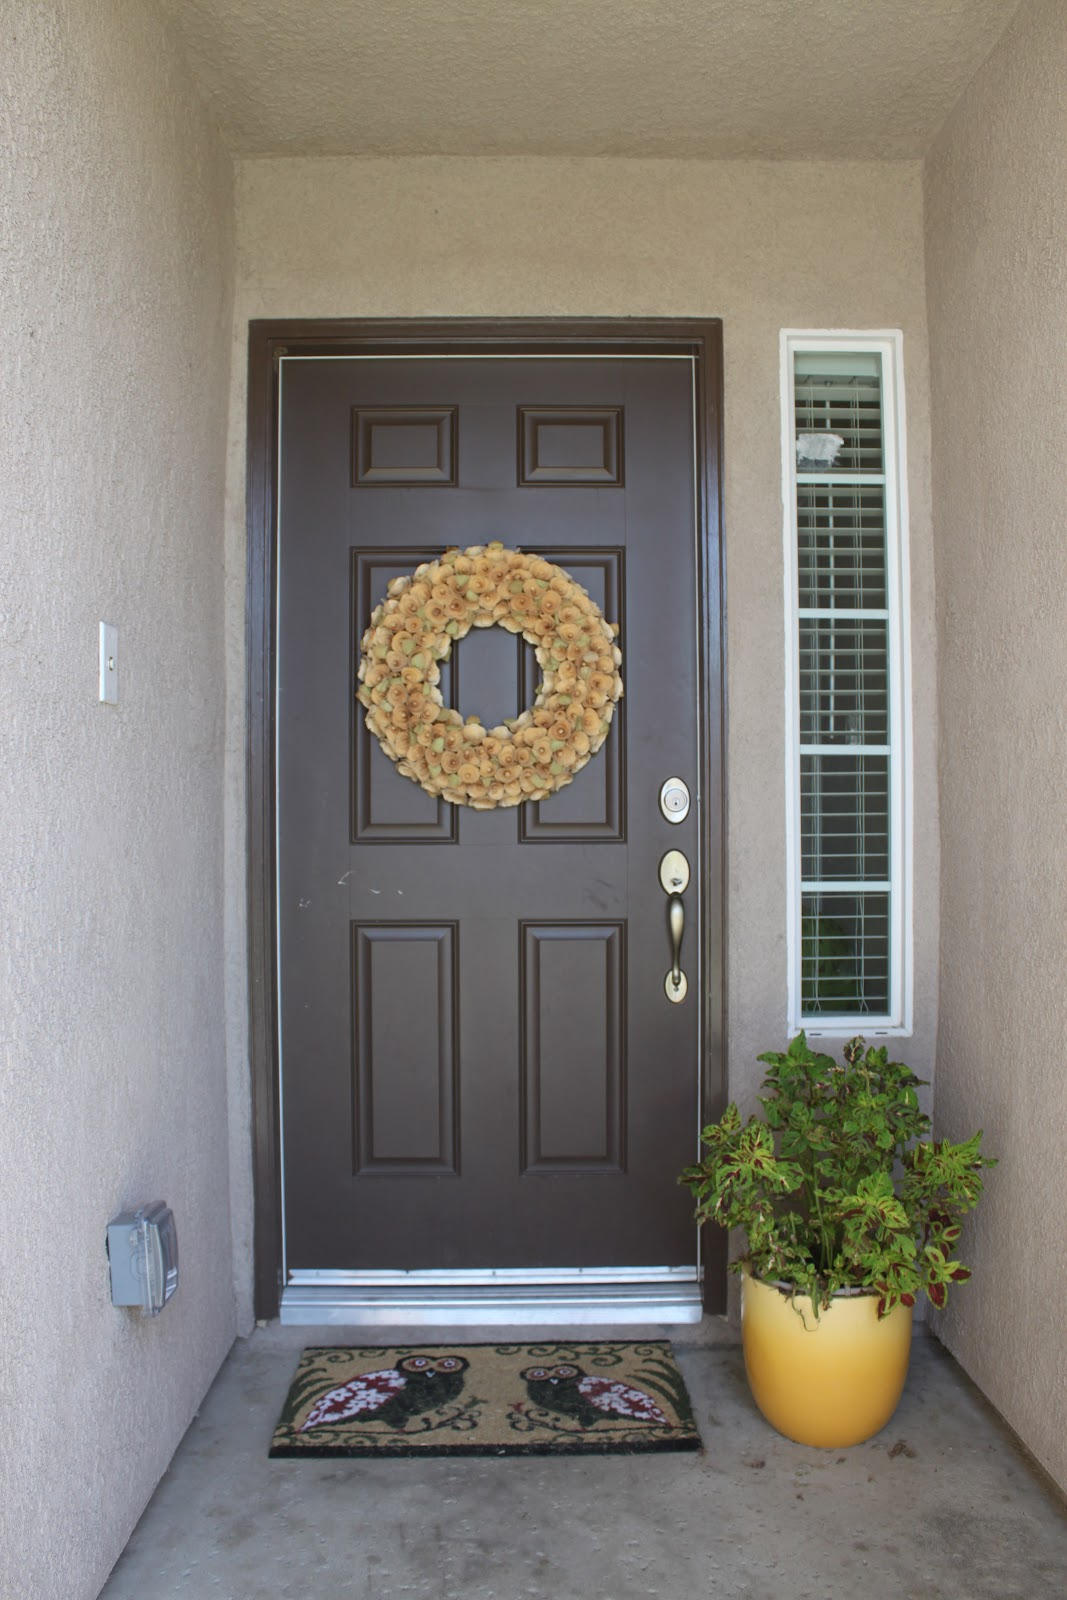 Spray Paint the Front Door! - No. 2 Pencil